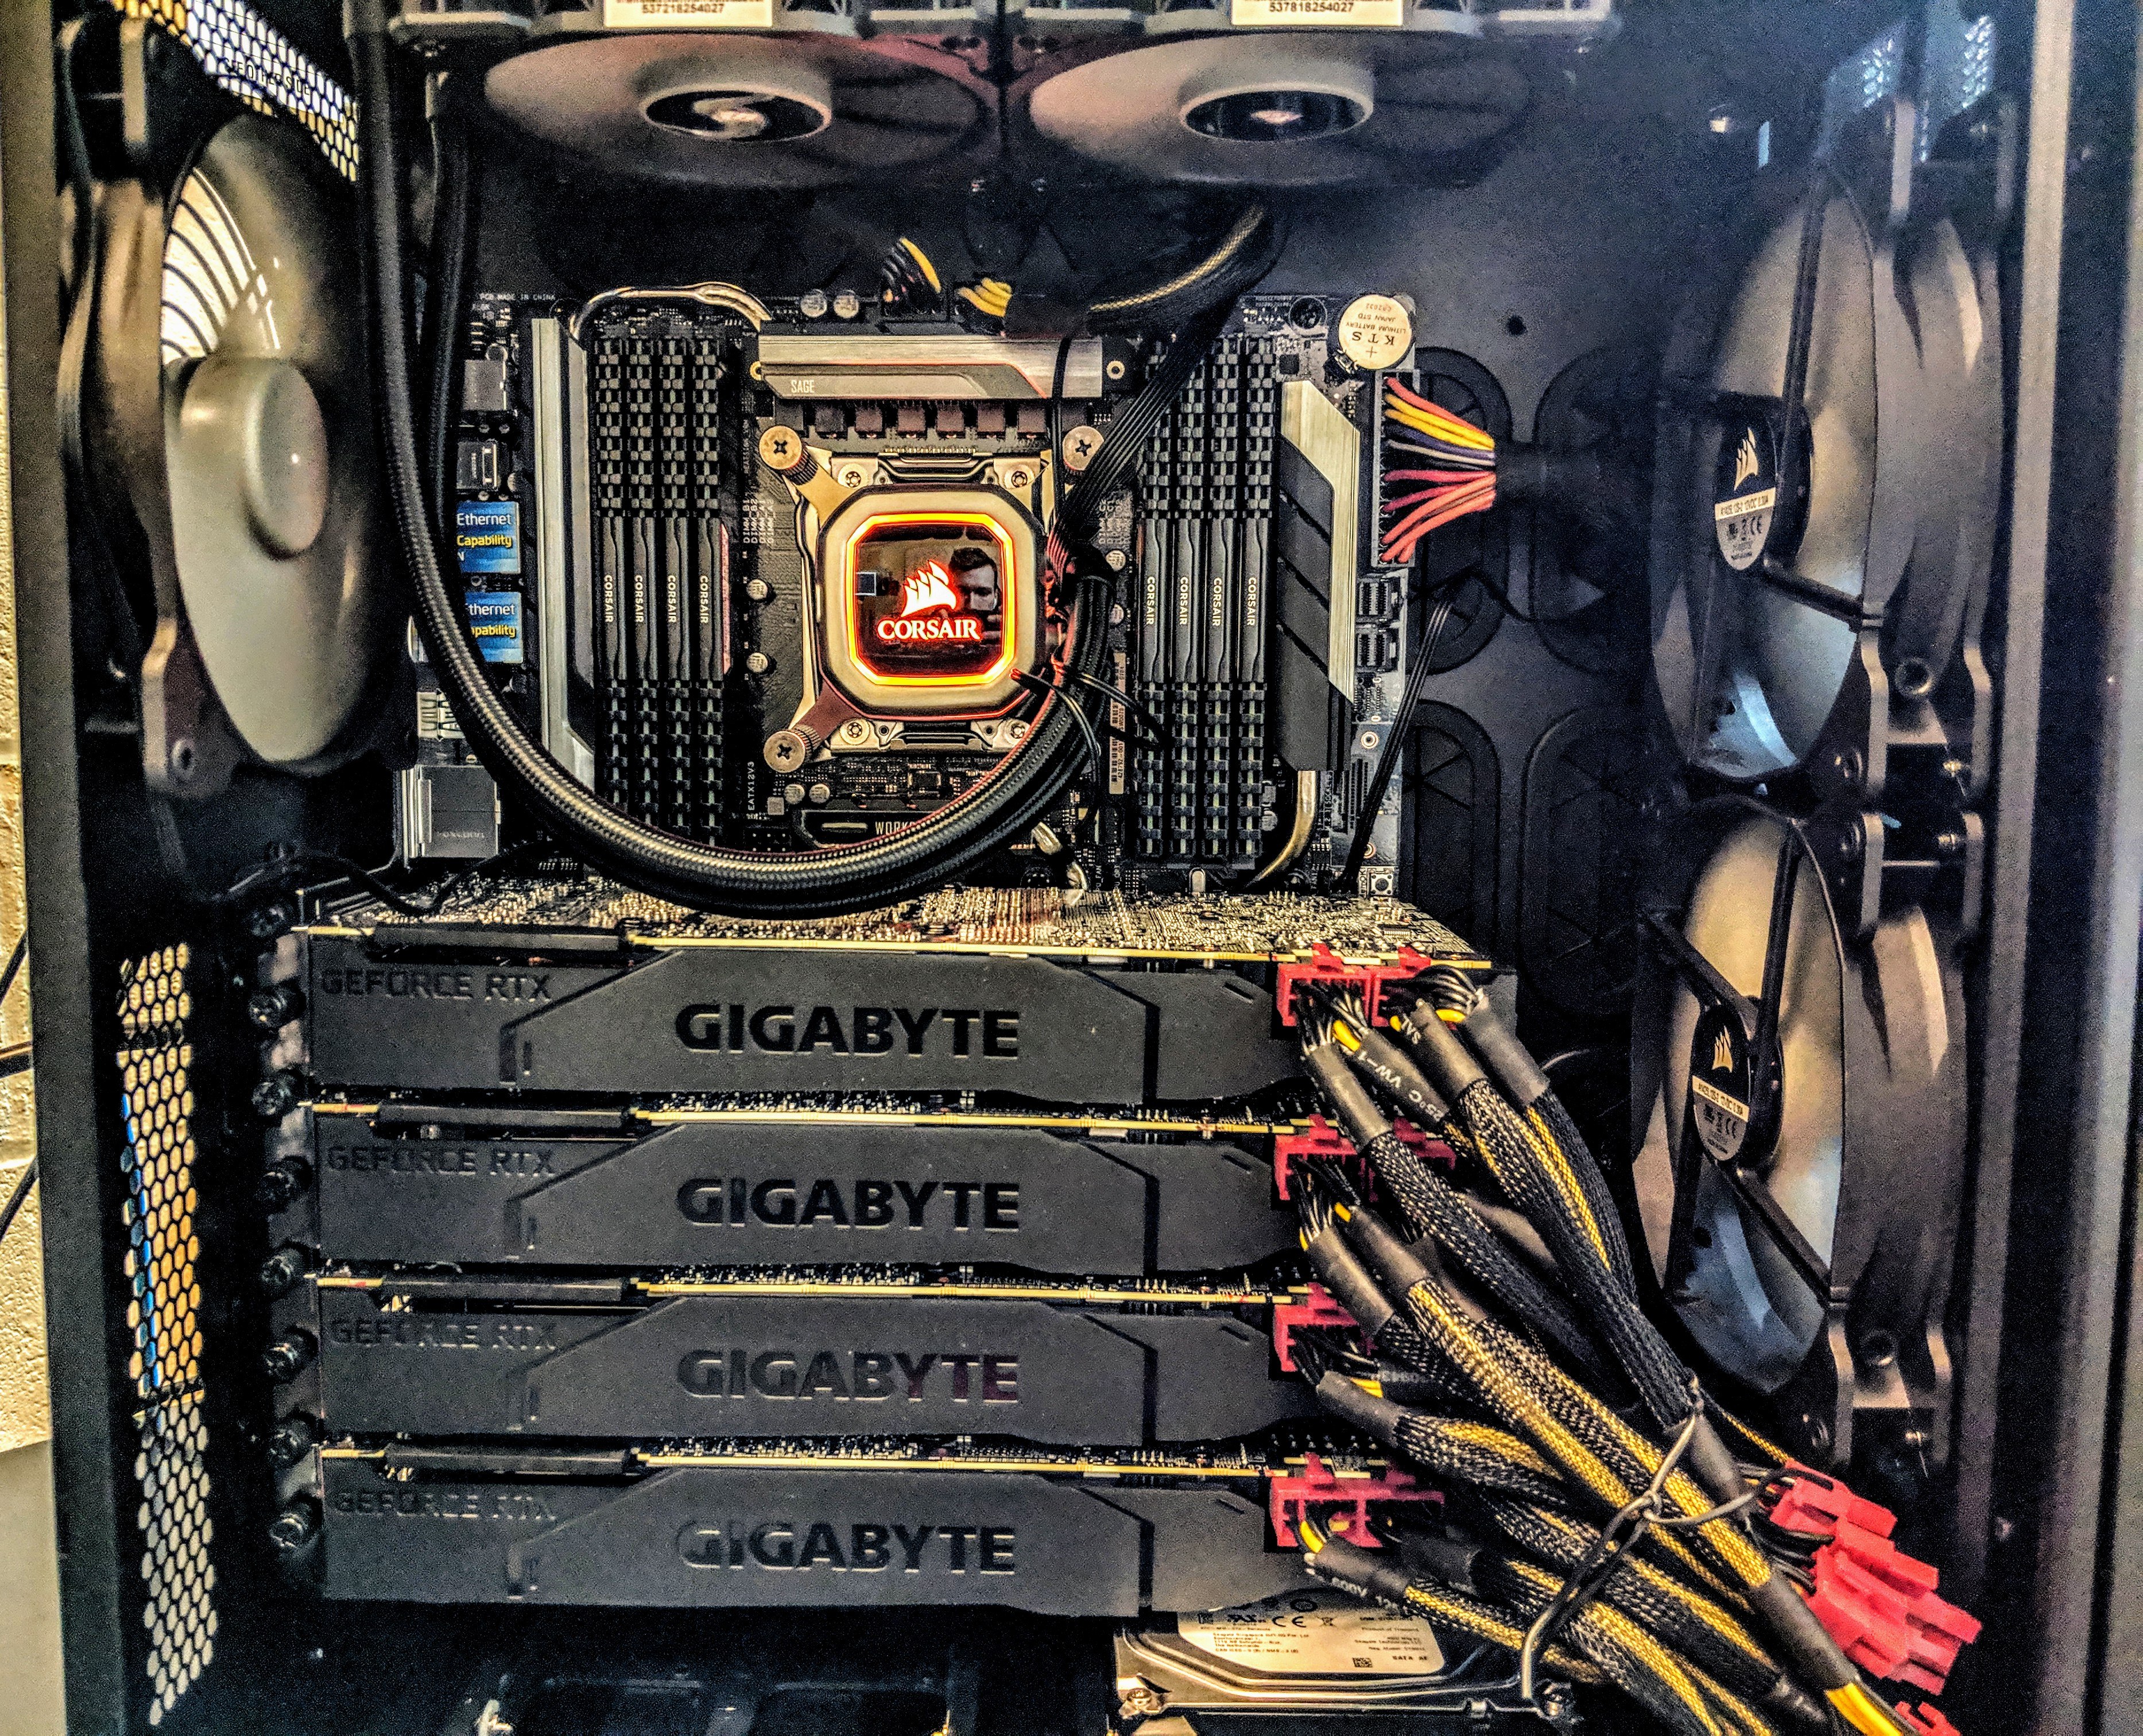 The Best 4-GPU Deep Learning Rig only costs $7000 not $11,000